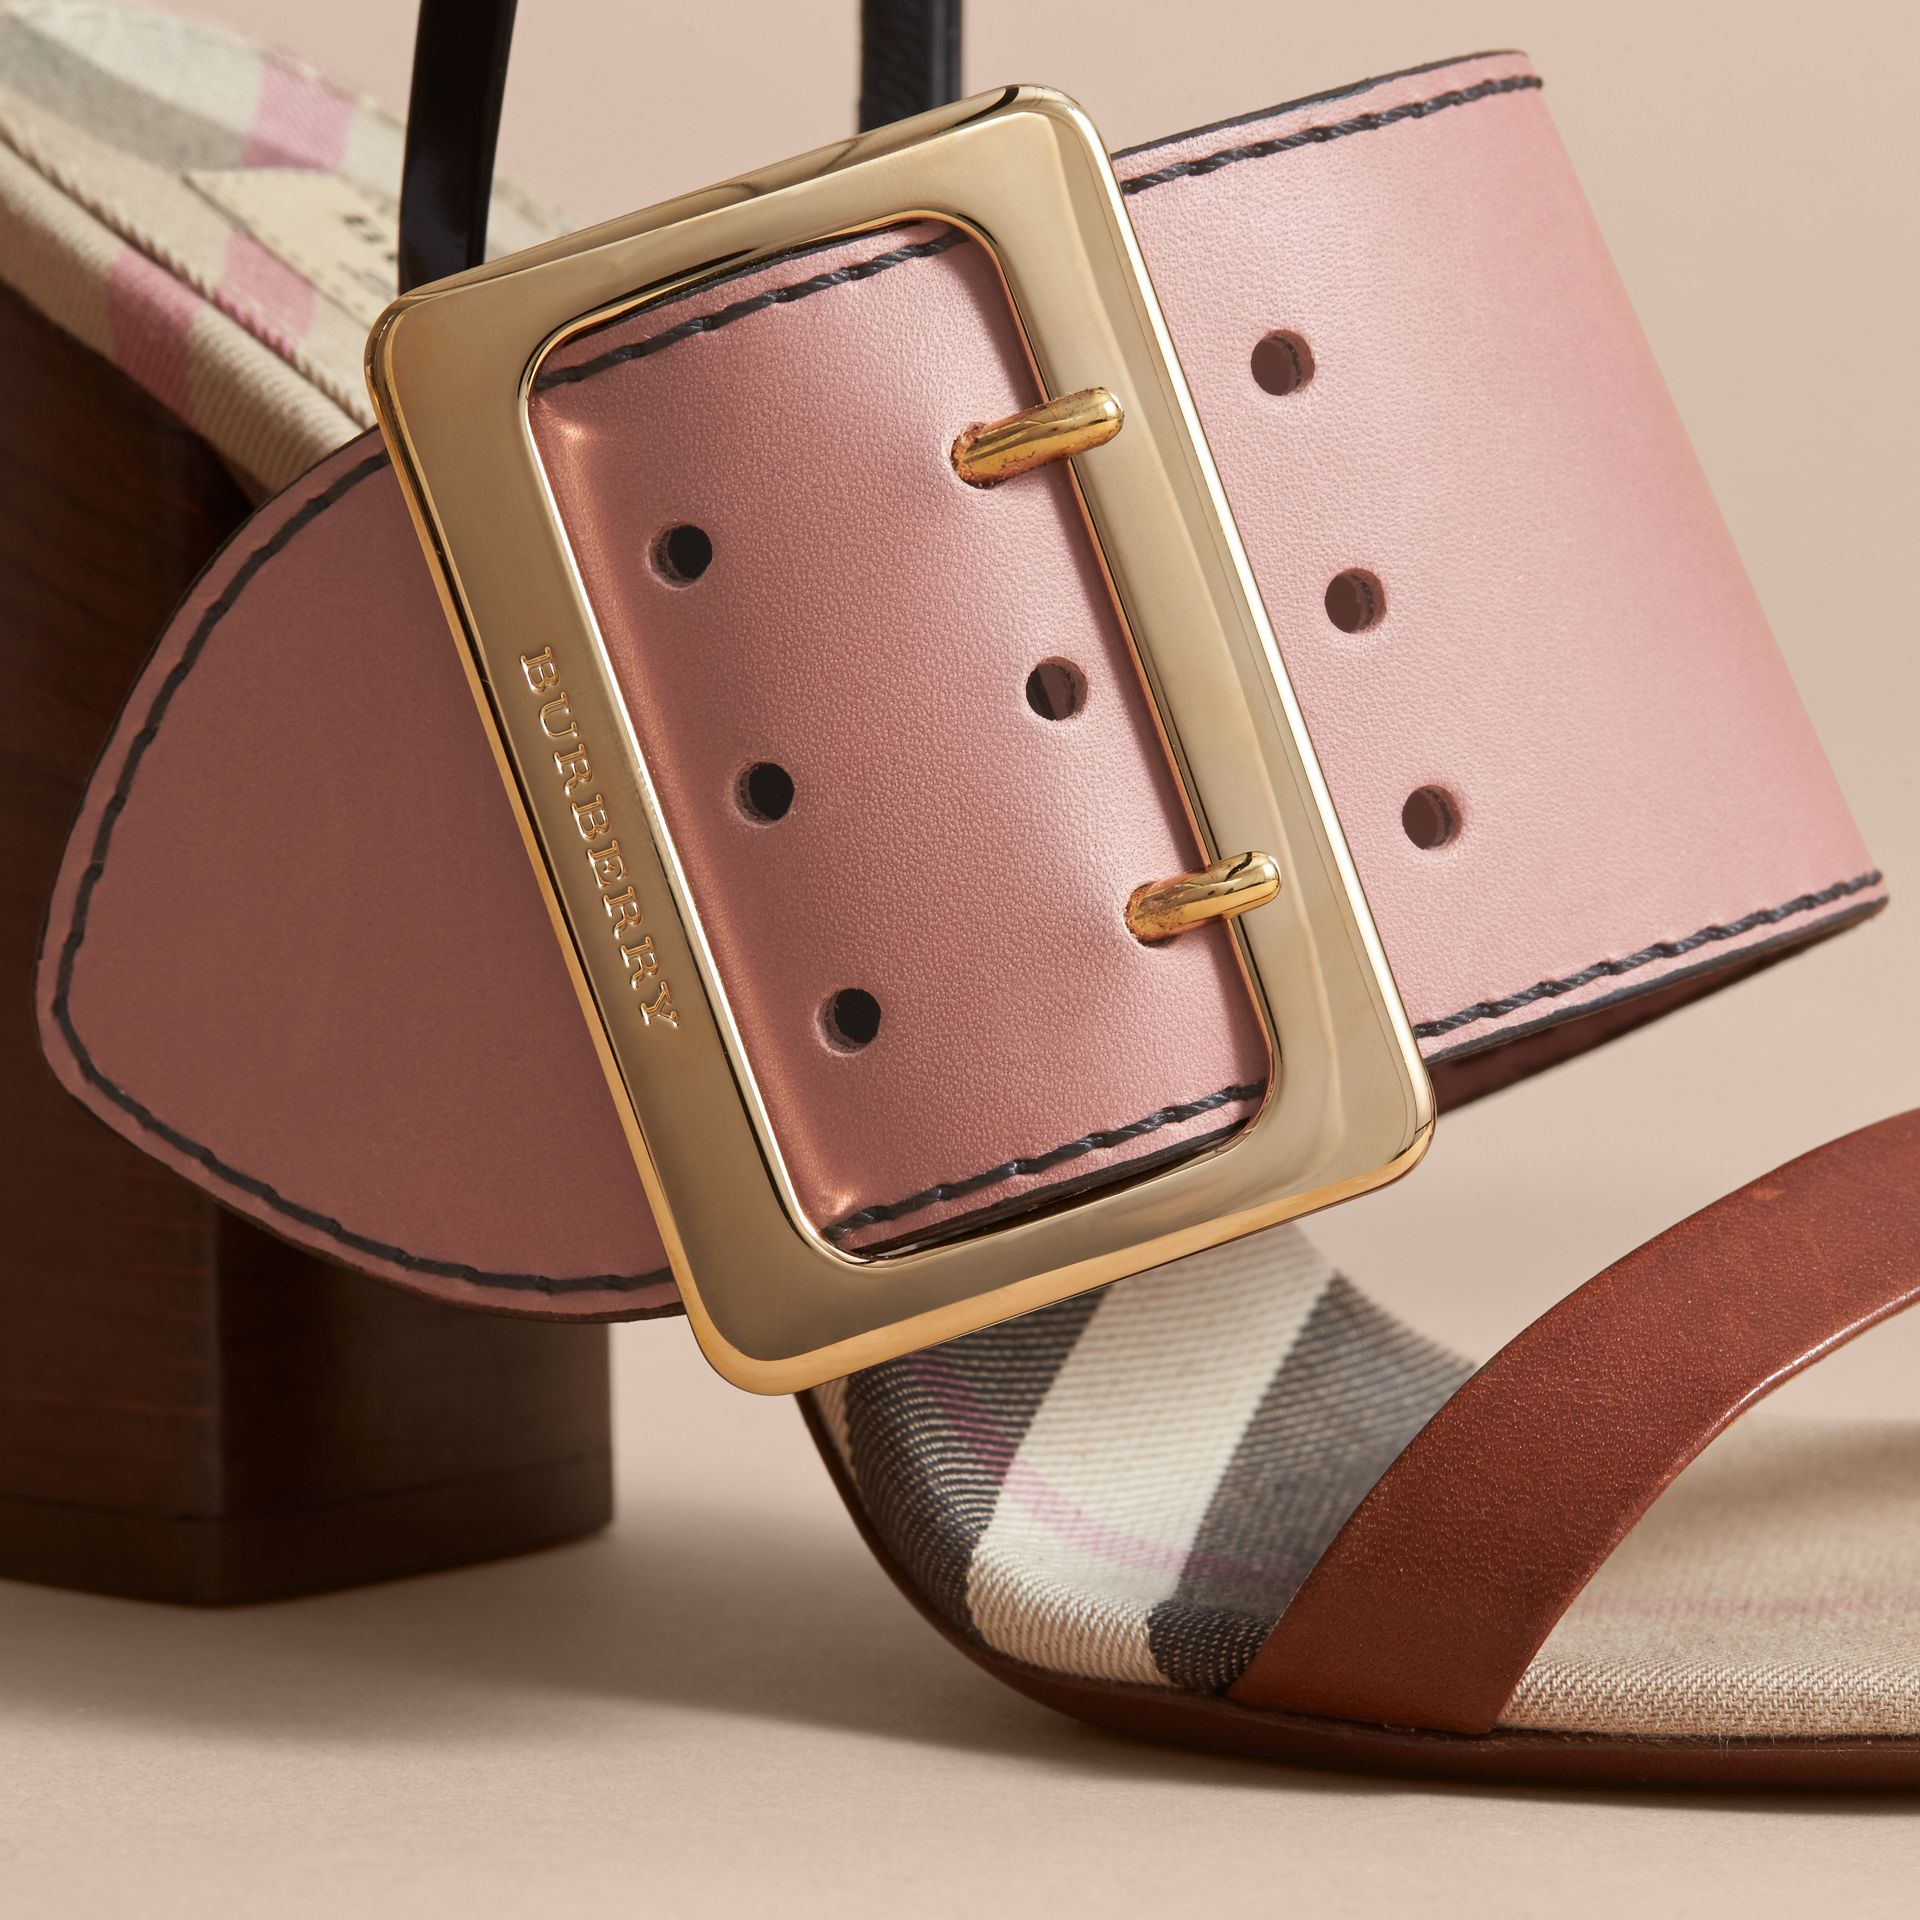 Ledersandalen mit Colour-Blocking-Design und Schnallendetail (Nude-rosa) - Damen | Burberry - Galerie-Bild 2